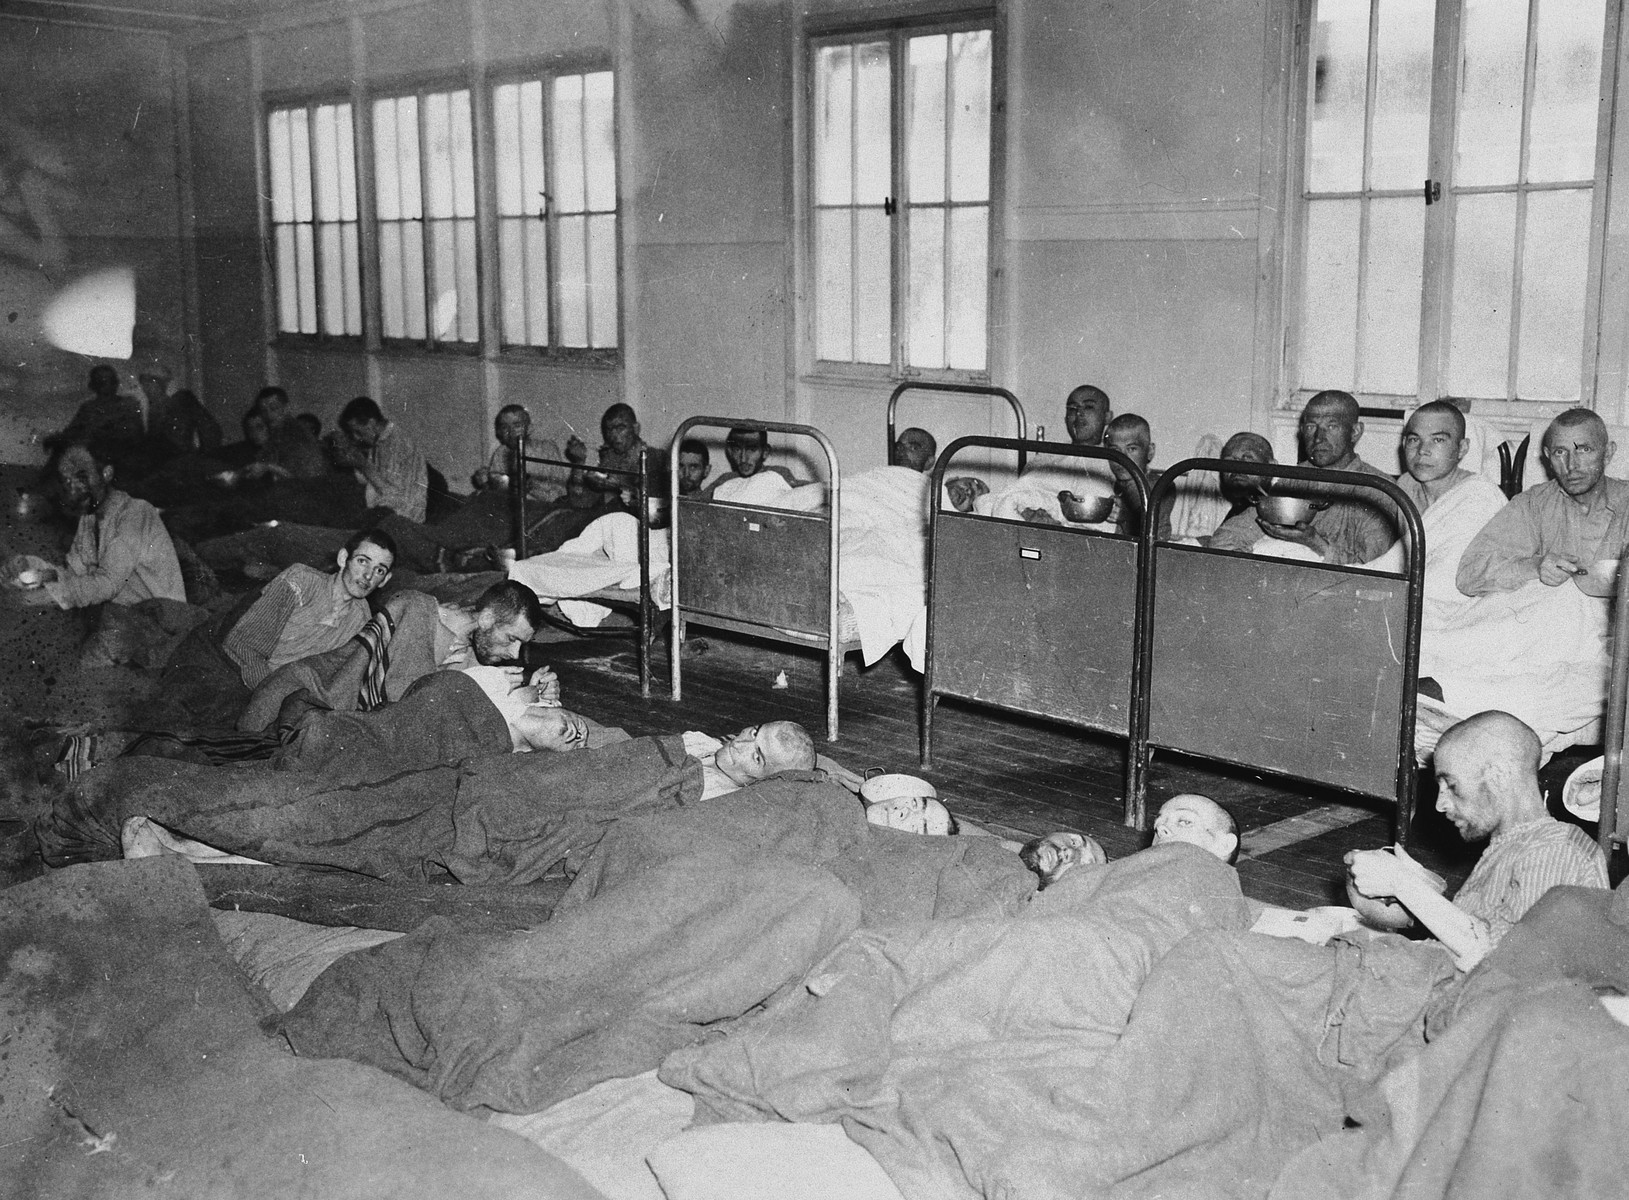 Infirmed survivors lie on cots and on the floor in the infirmary of the Dachau concentration camp.